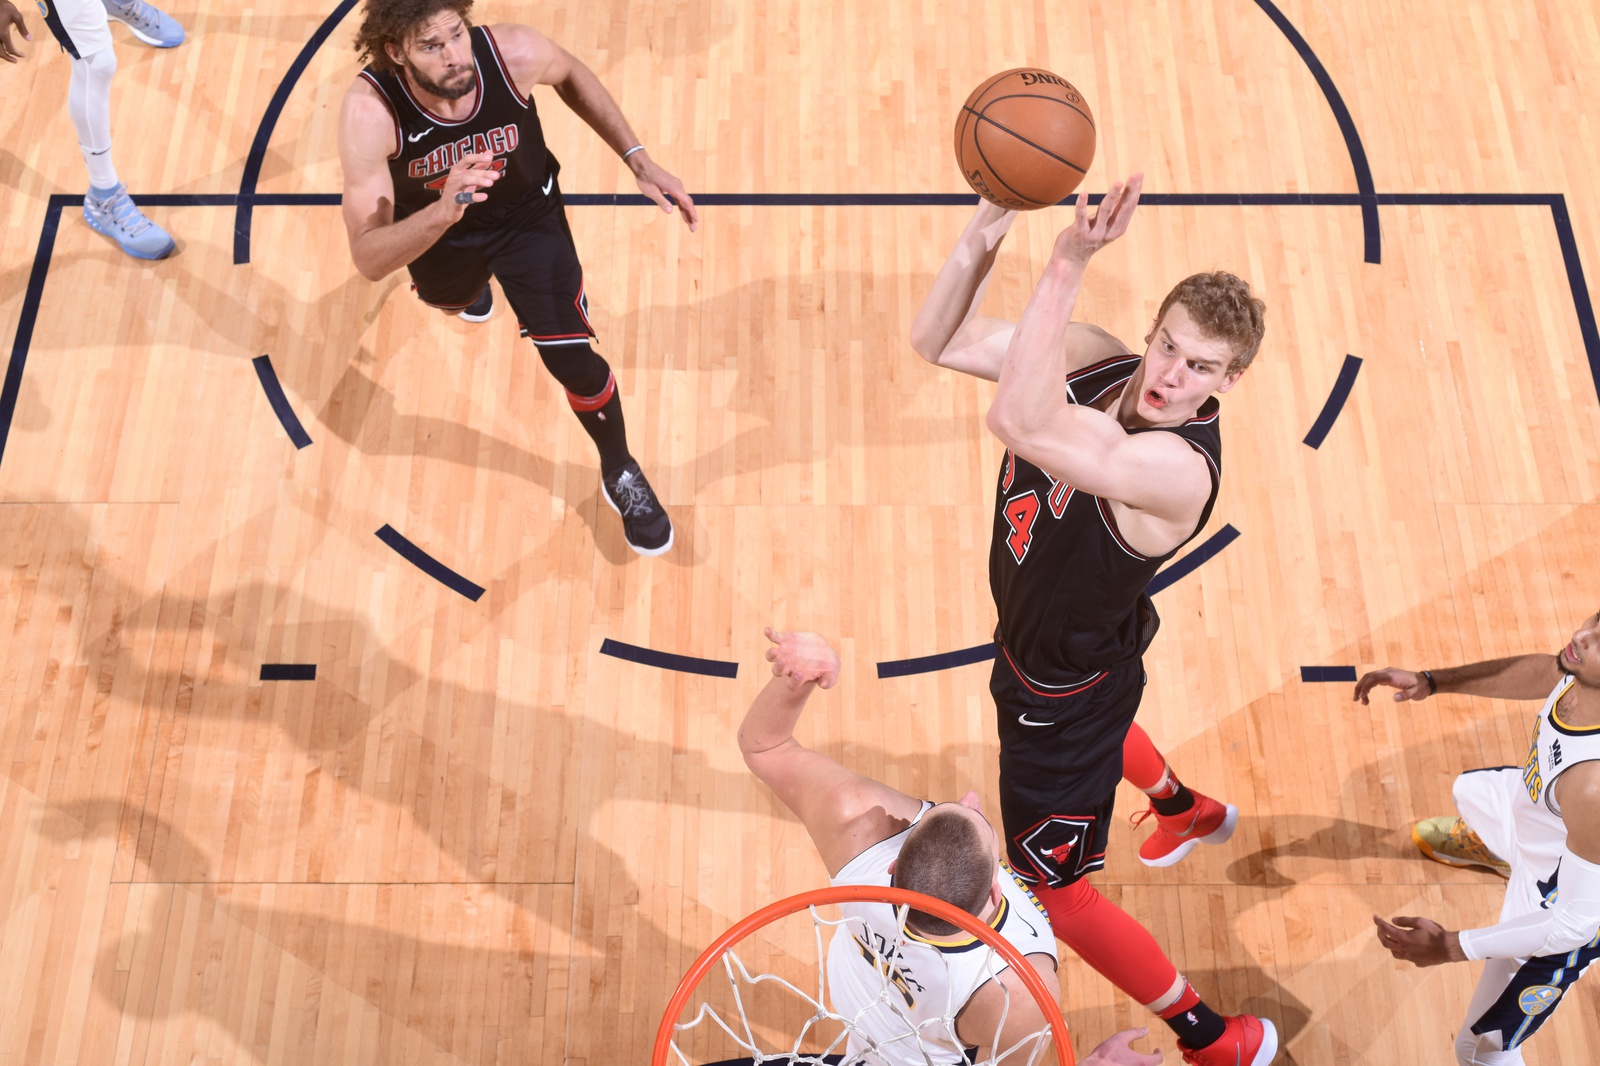 Lauri Markkanen #24 of the Chicago Bulls goes to the basket against the Denver Nuggets on November 30, 2017 at the Pepsi Center in Denver, Colorado.